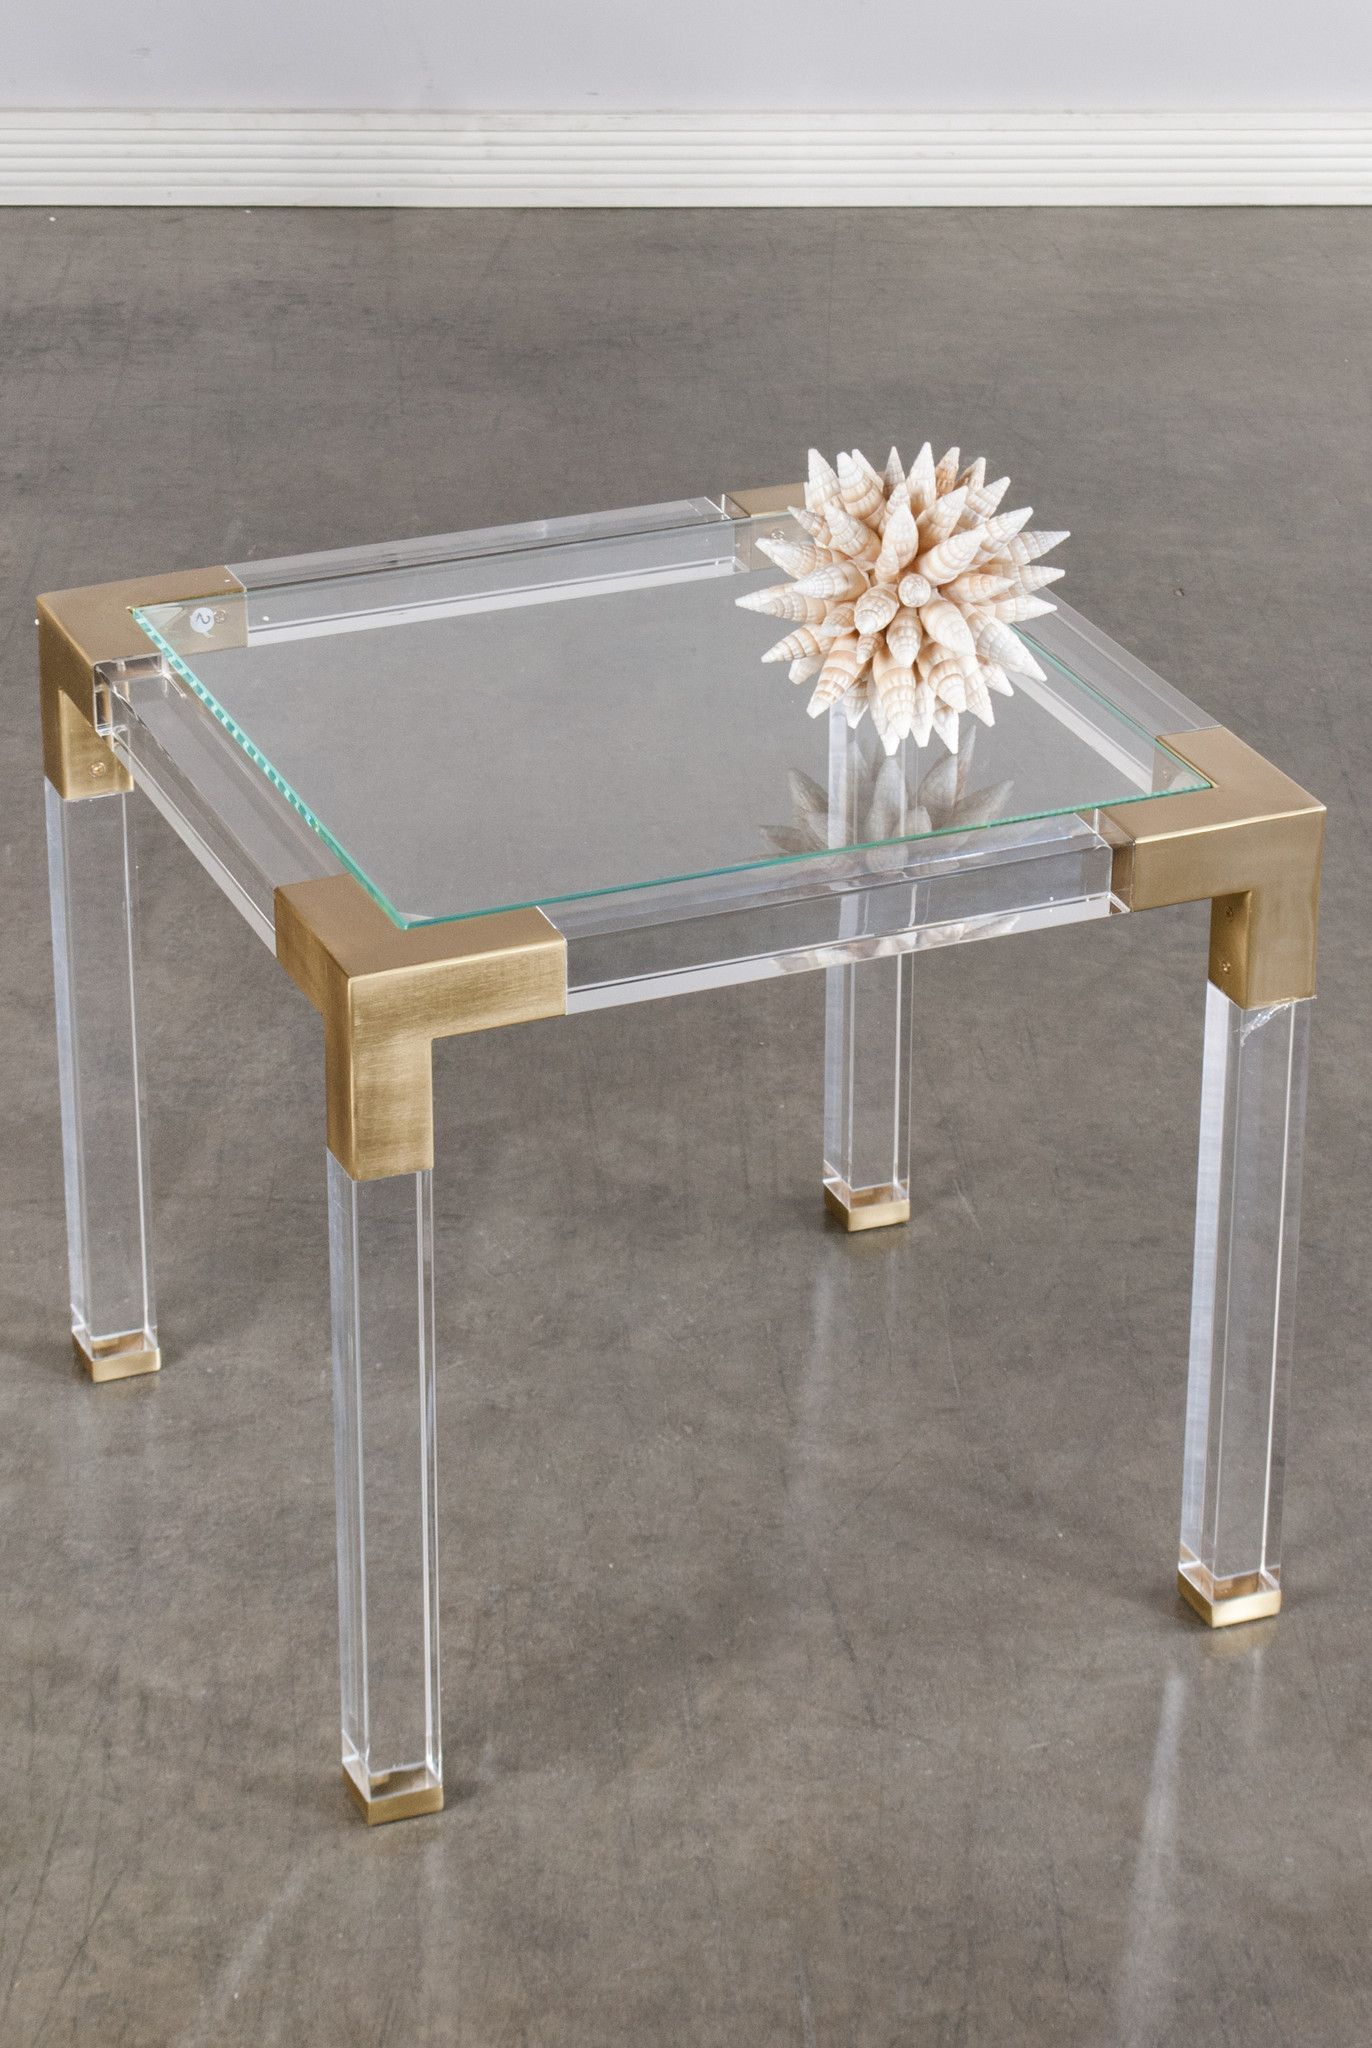 lucia acrylic side table white and gold furniture plexiglass end tables coffee with stone inlay wood nic inch high console glass top dining chairs unfinished island night brass